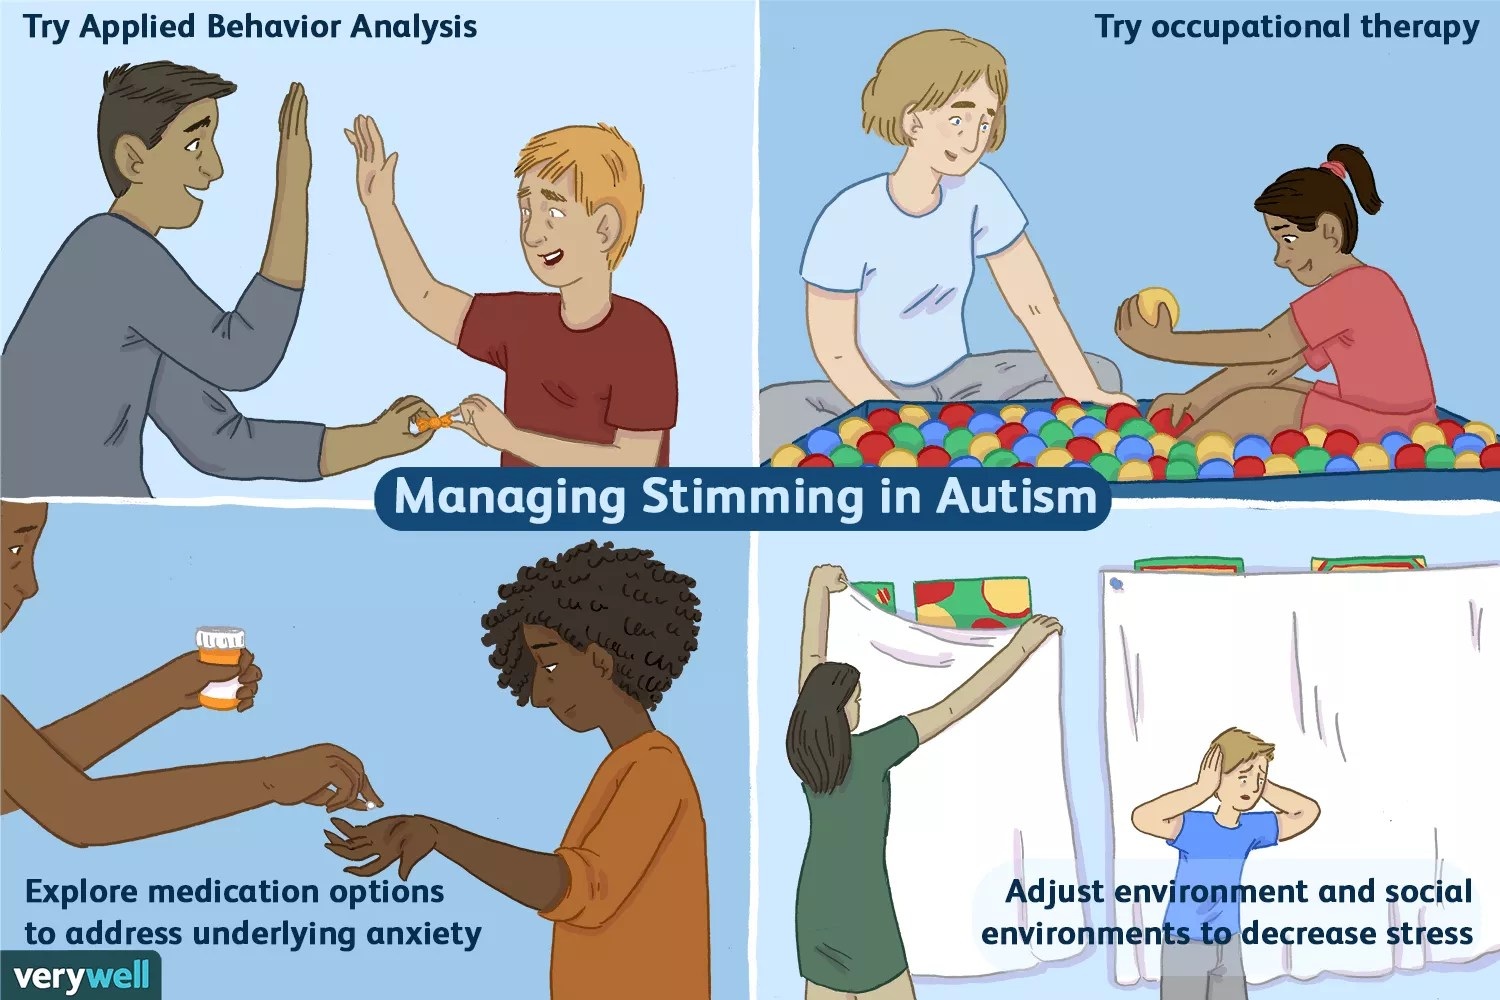 managing stimming in autism